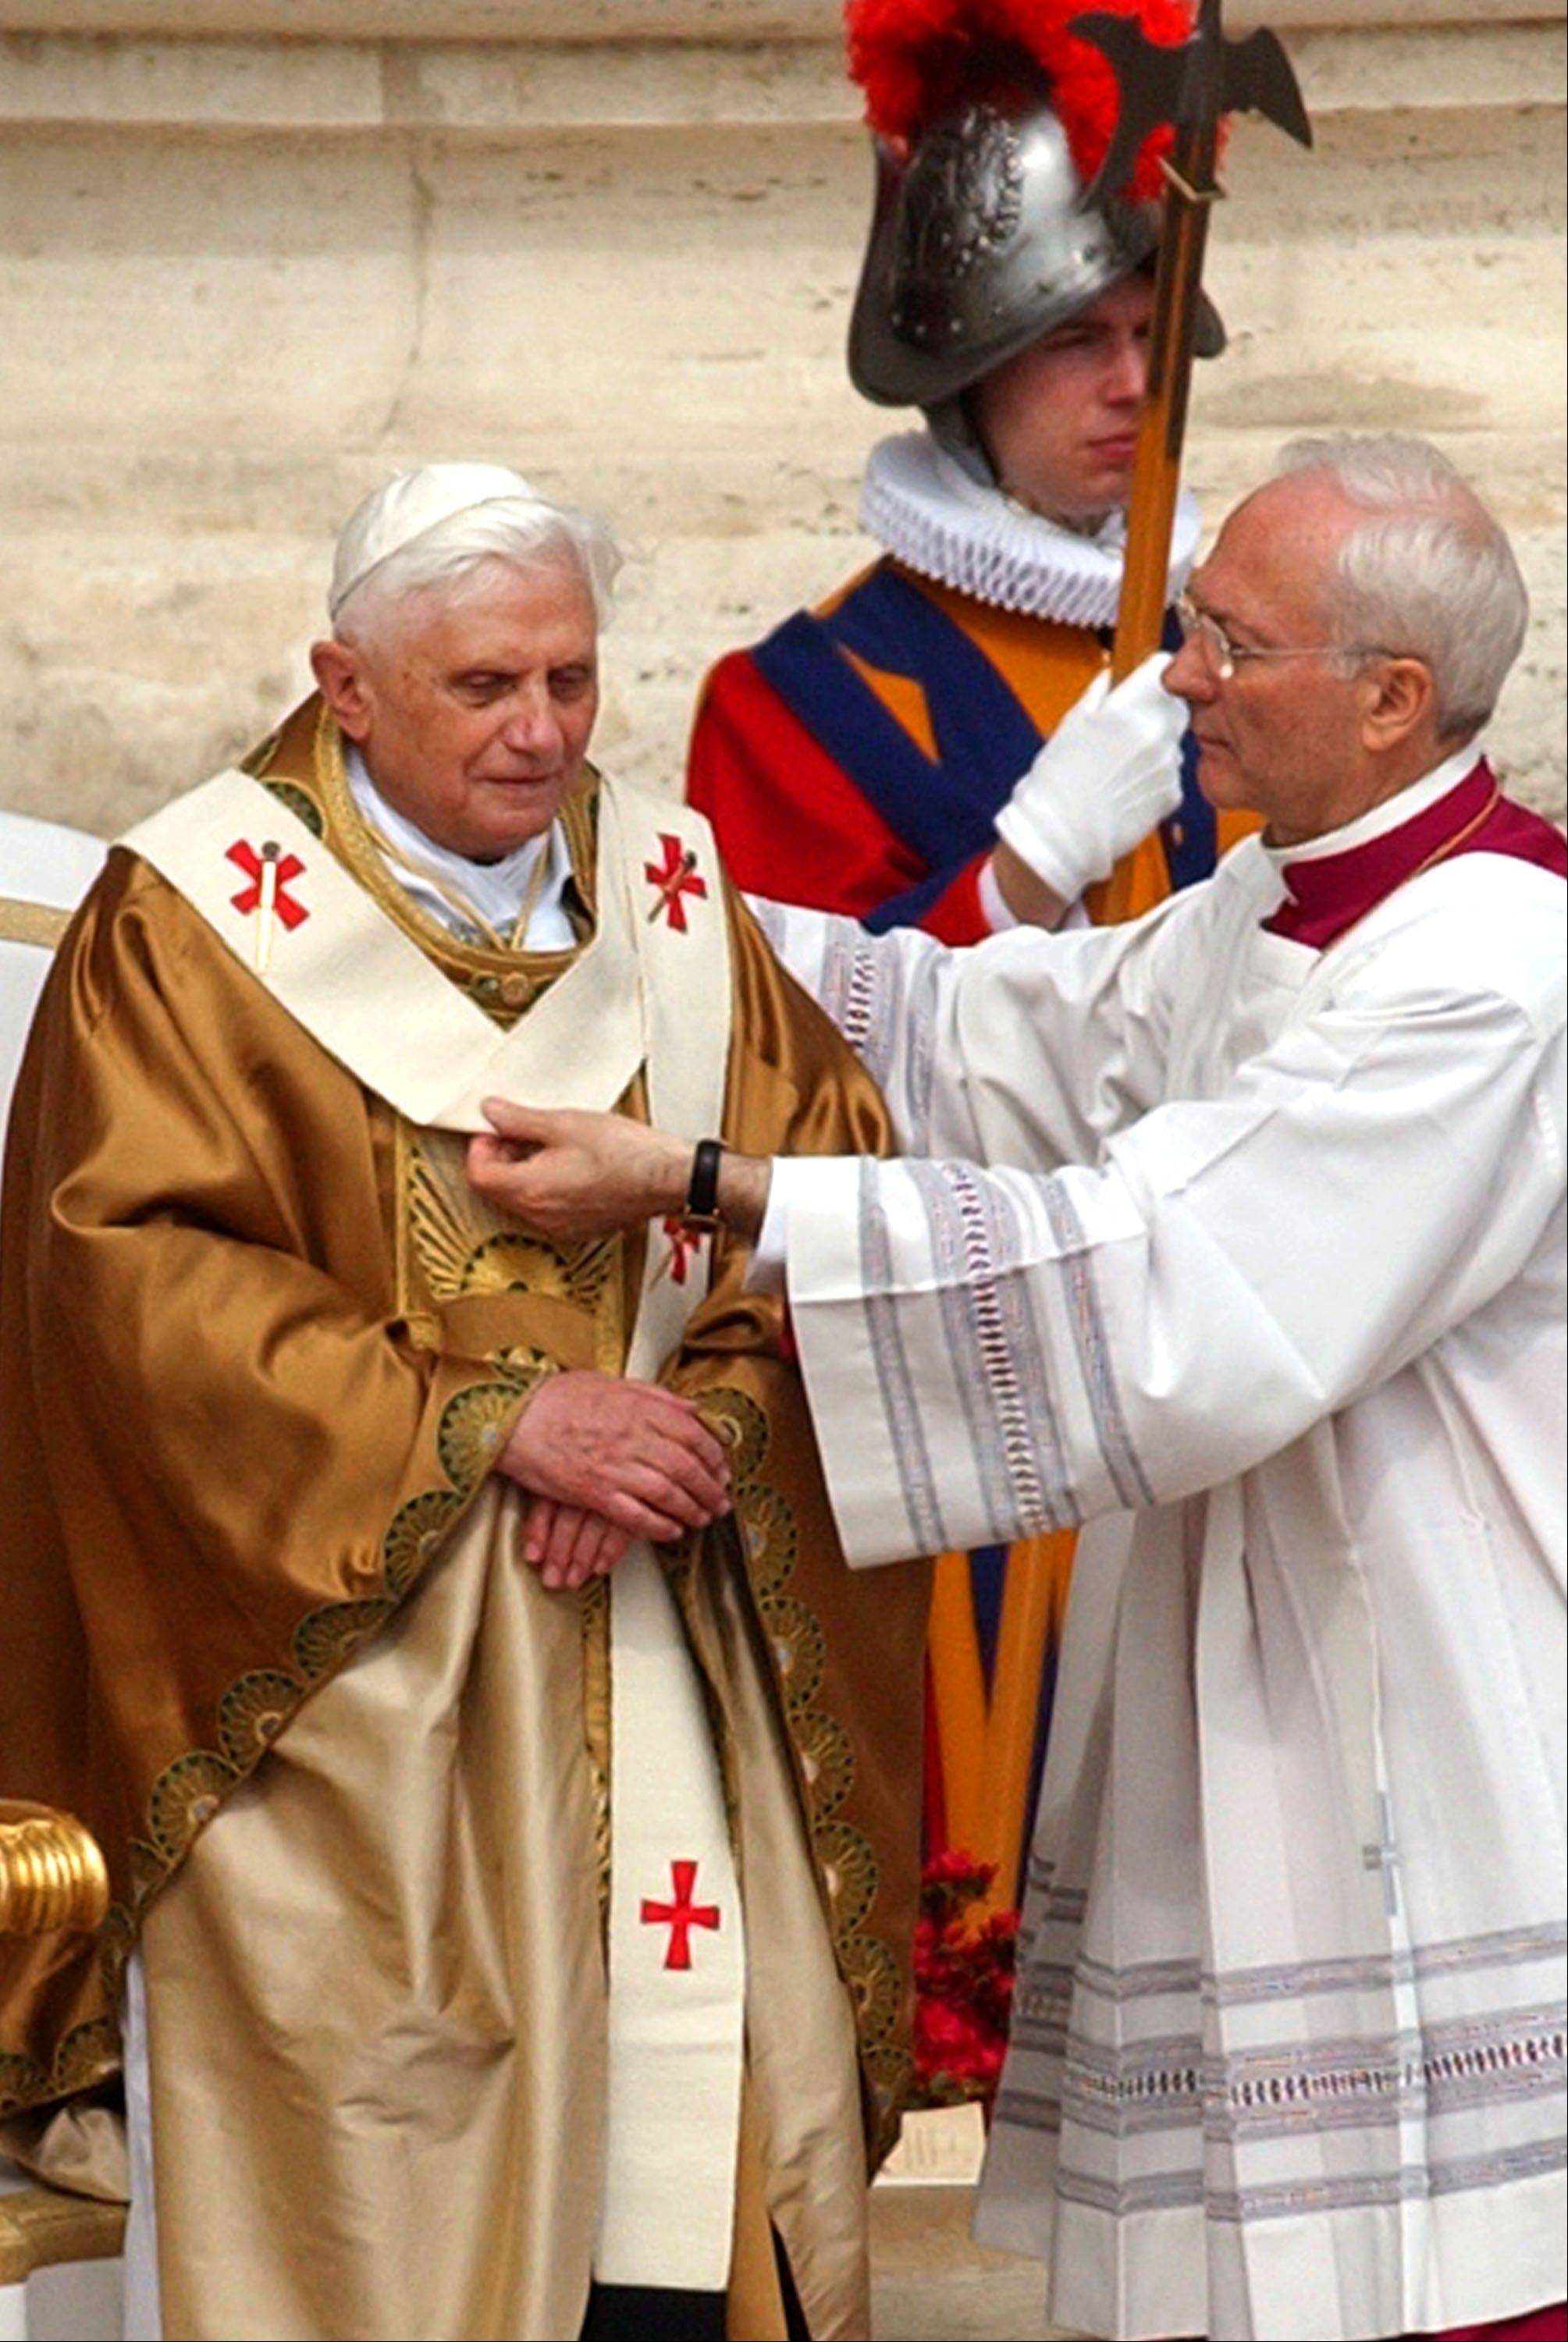 Archbishop Piero Marini drapes Pope Benedict XVI with the pallium during his installment Mass in St. Peter's Square at the Vatican.